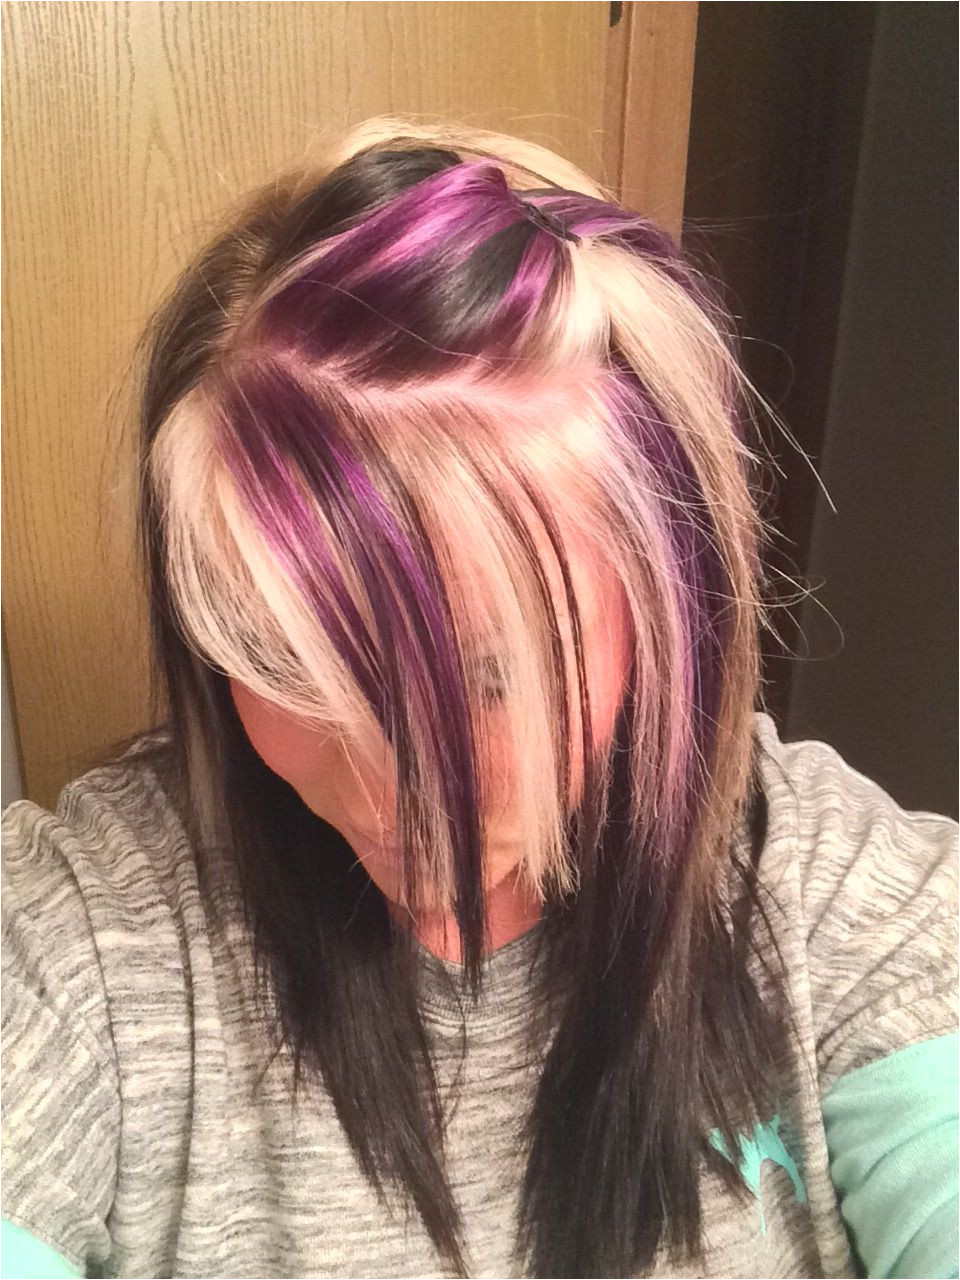 Hairstyles Black with Red Highlights Purple Blonde and Black On top with All Black Underneath